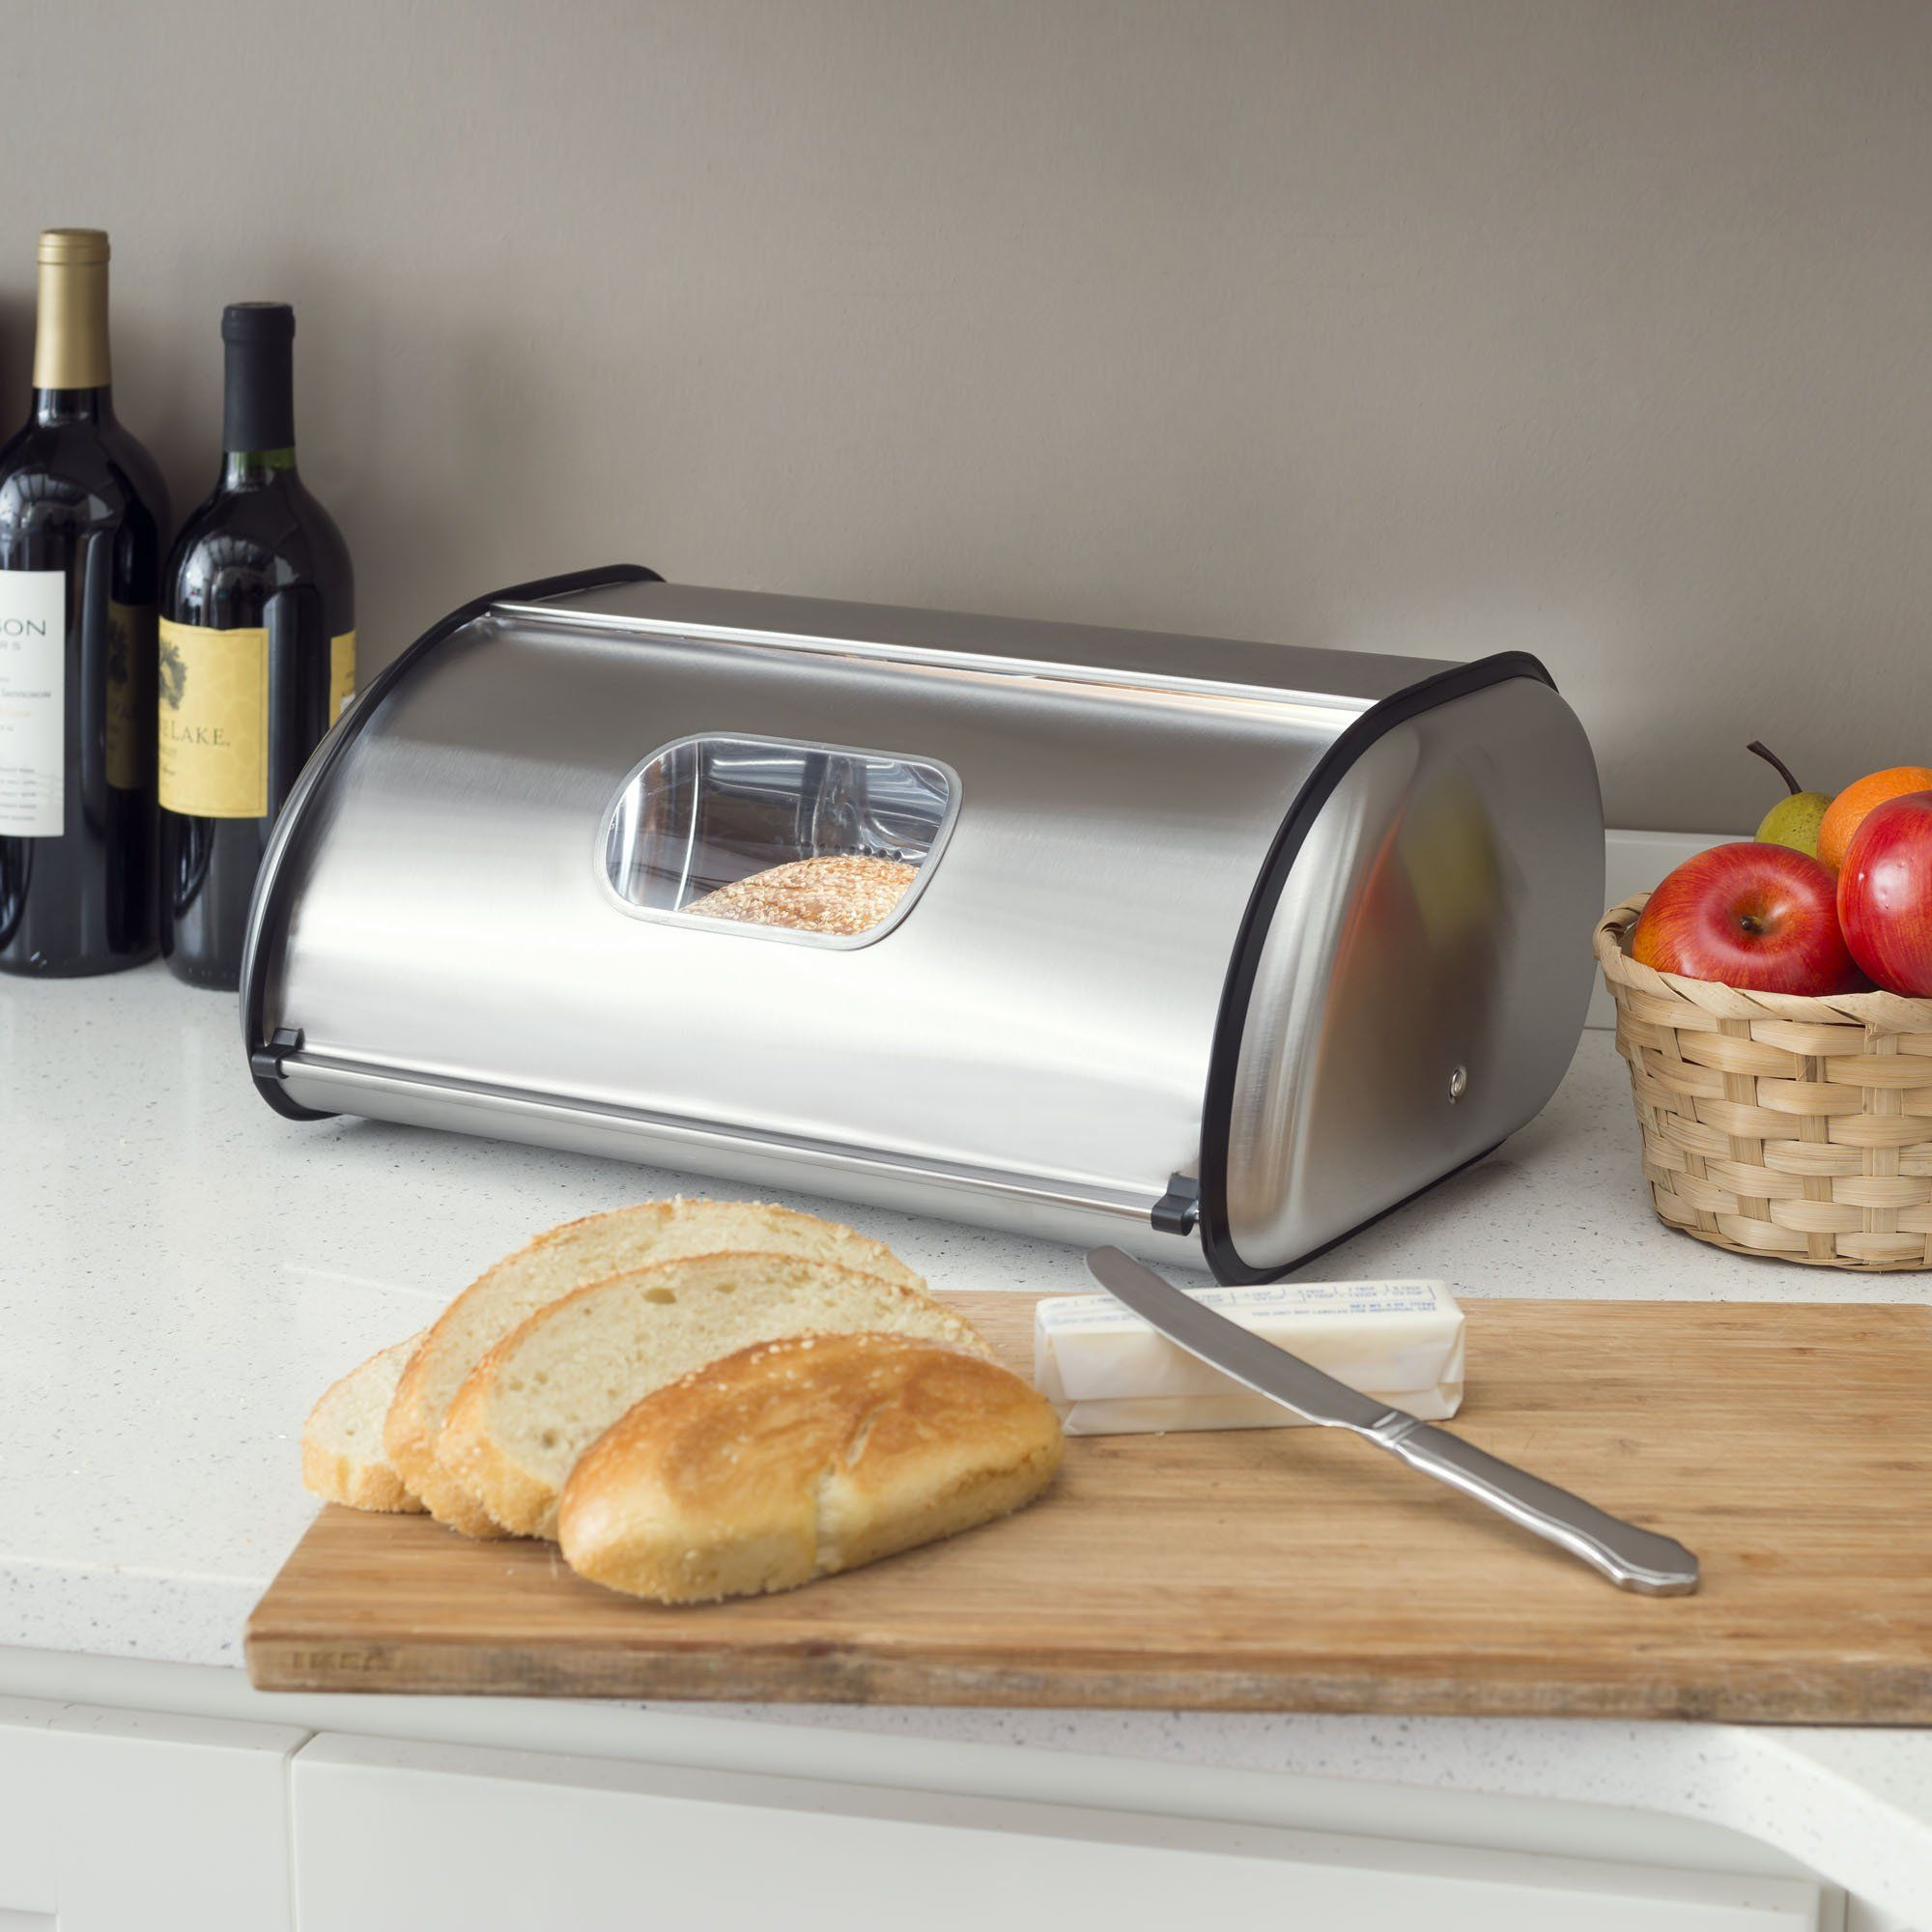 From rich, moist chocolate chip cookies to soft, herb infused bread, keep all your favorite baked confections neatly stored away and all the aromotic flavors preserved with this modern style breadbox. It boasts a beautiful stainless steel finish with a beautiful jet black trim for eye-catching contrast. A small circular window lets you easily get a sneak peek of what's inside, while the smooth roll-up lid makes it easy for you to grab your favorite treat when needed. Display it on your counterto